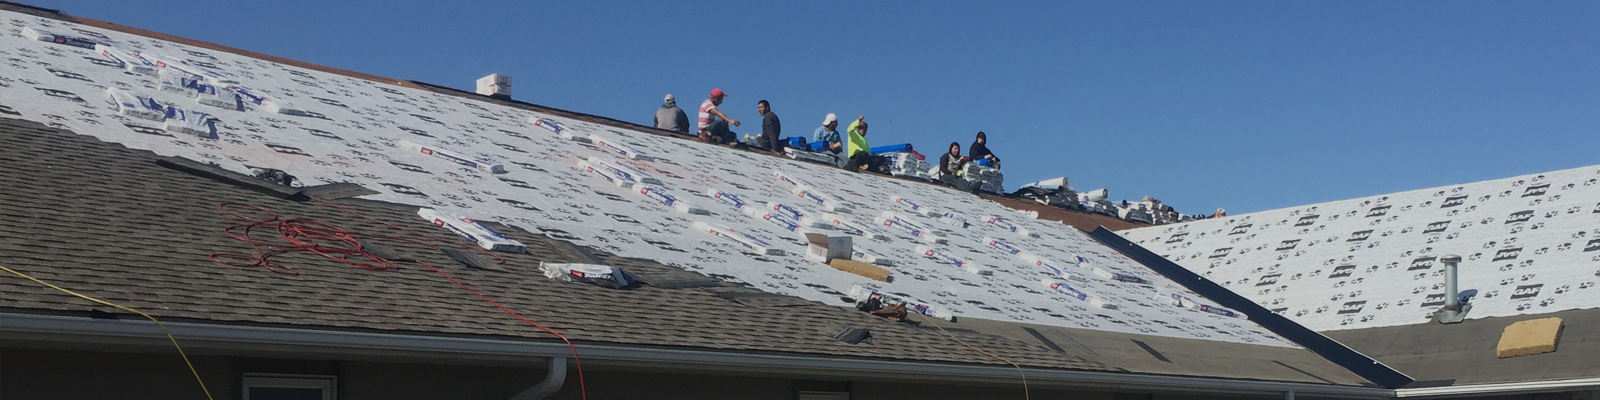 Roofing Company working on a residential roof in Shakopee, MN